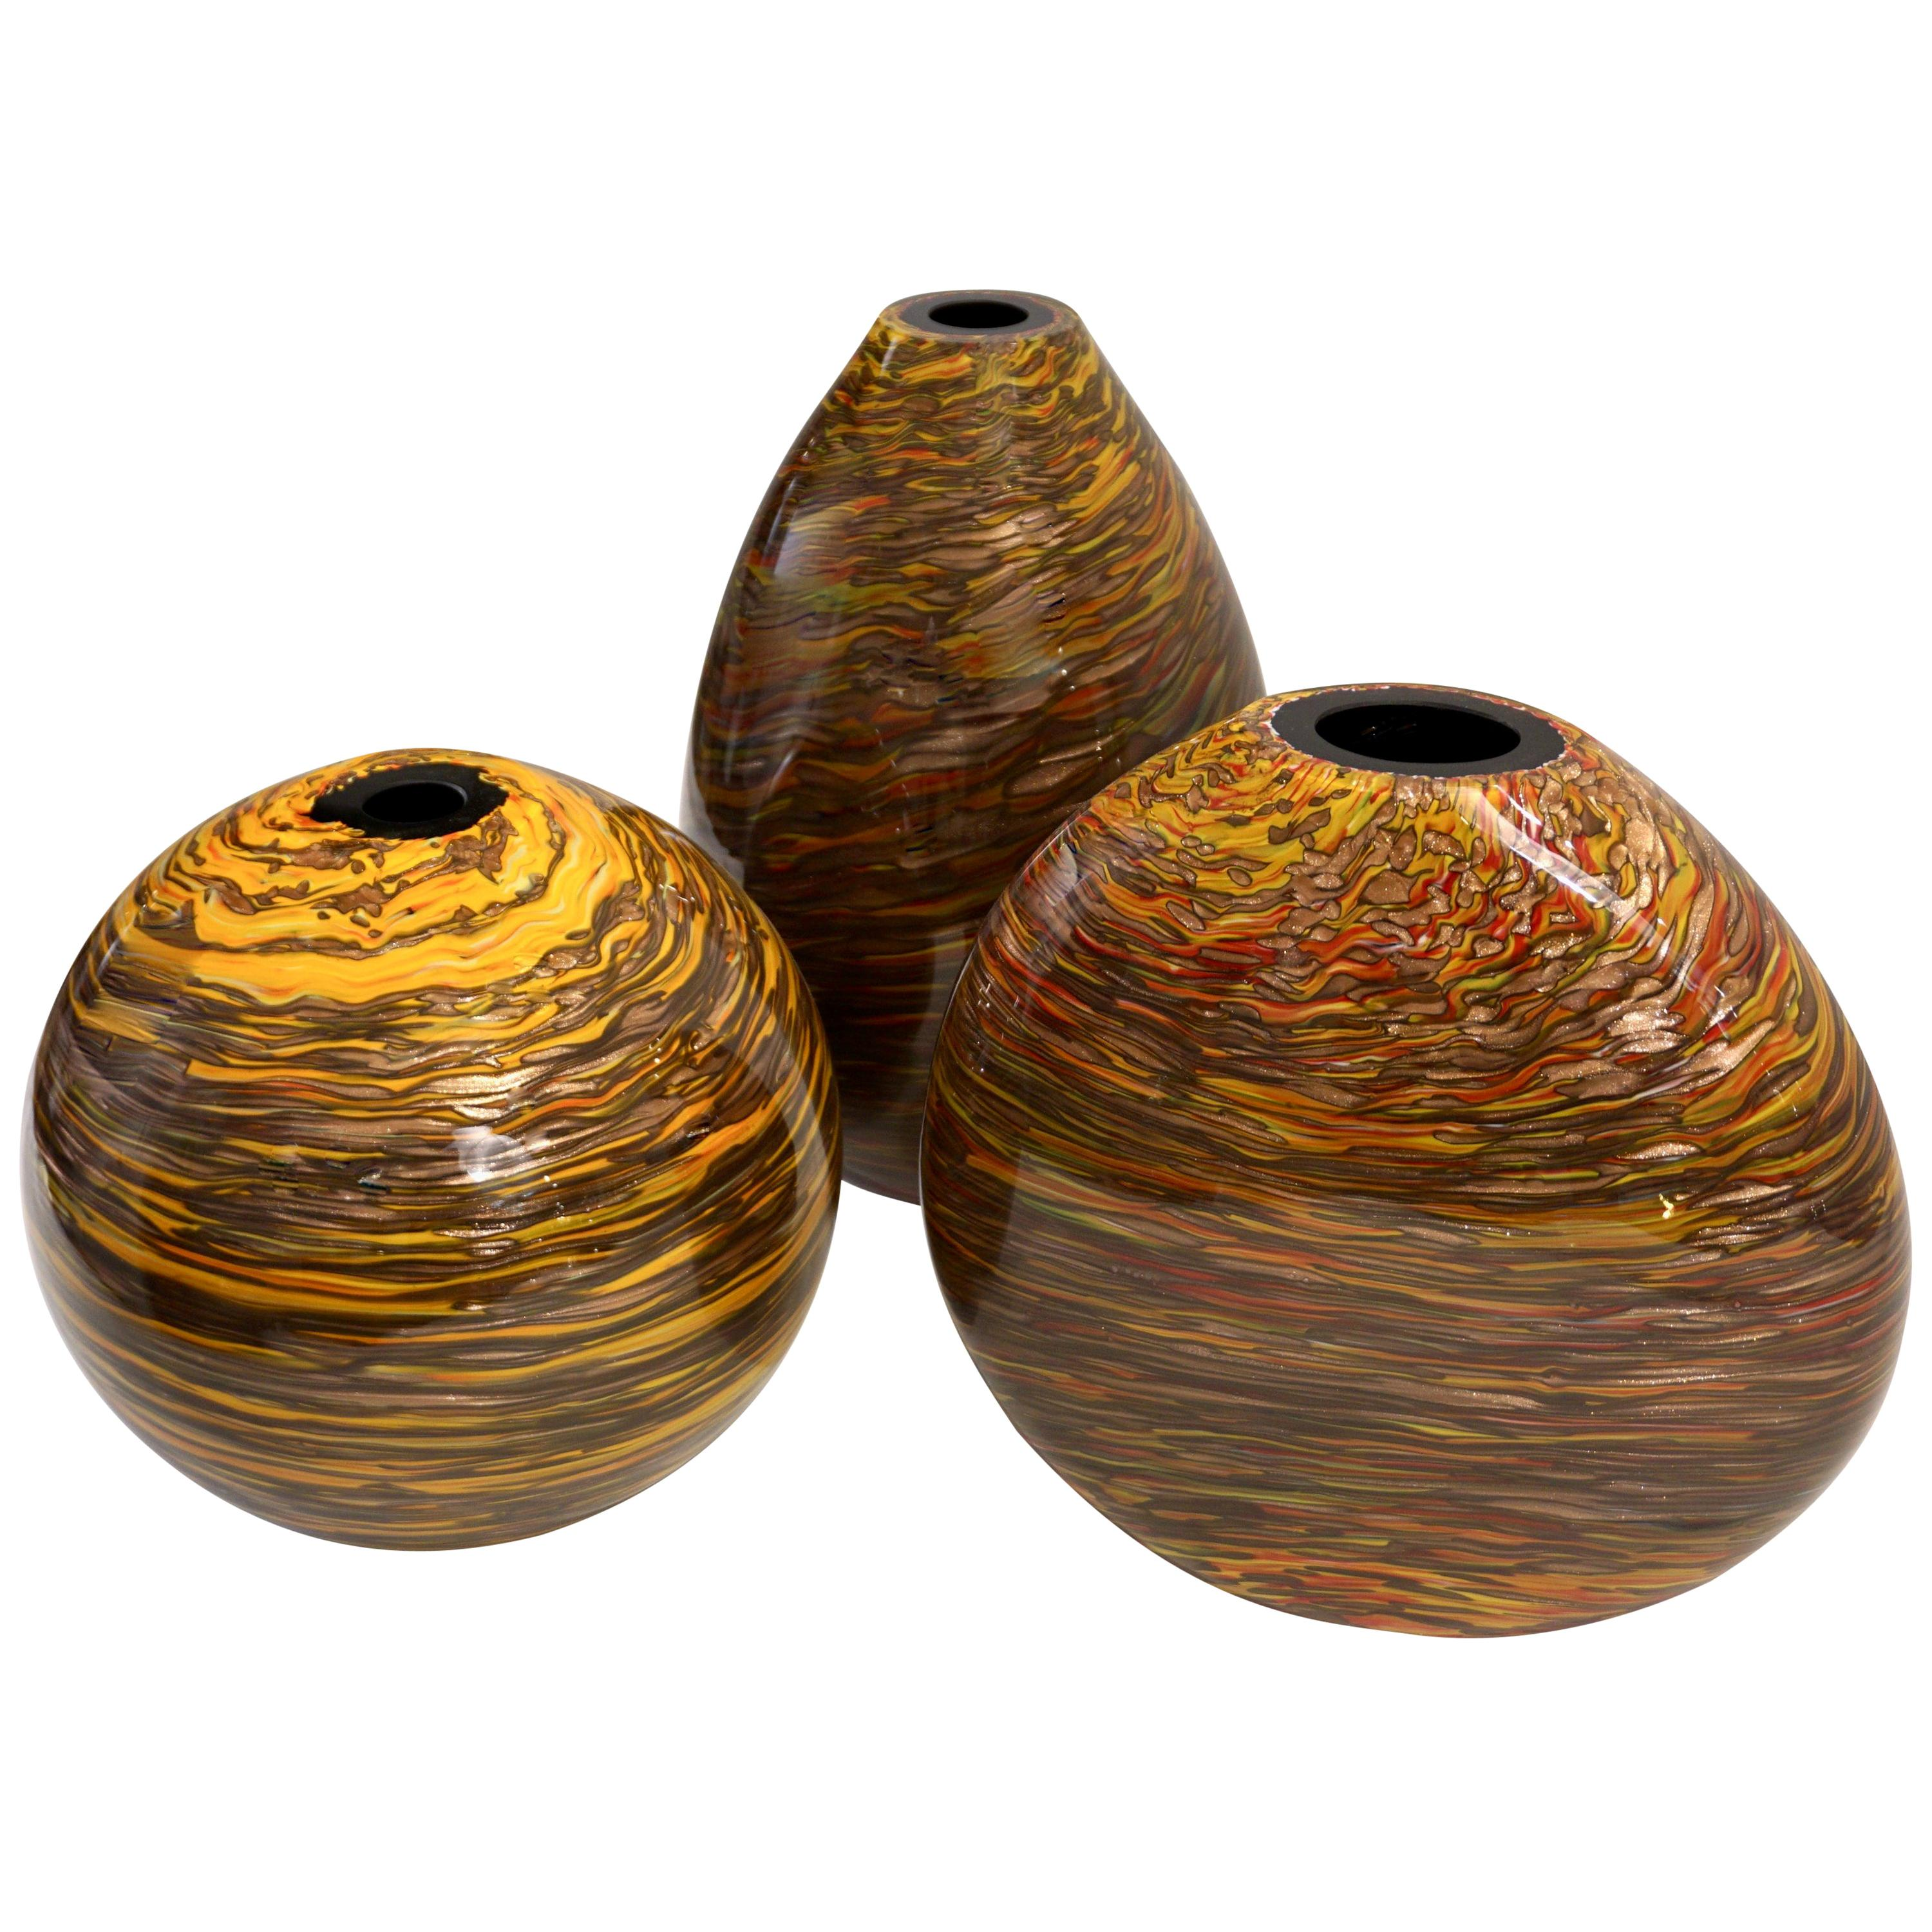 Formia 1980s Modern Set of Three Brown Yellow Red Orange Gold Murano Glass Vases